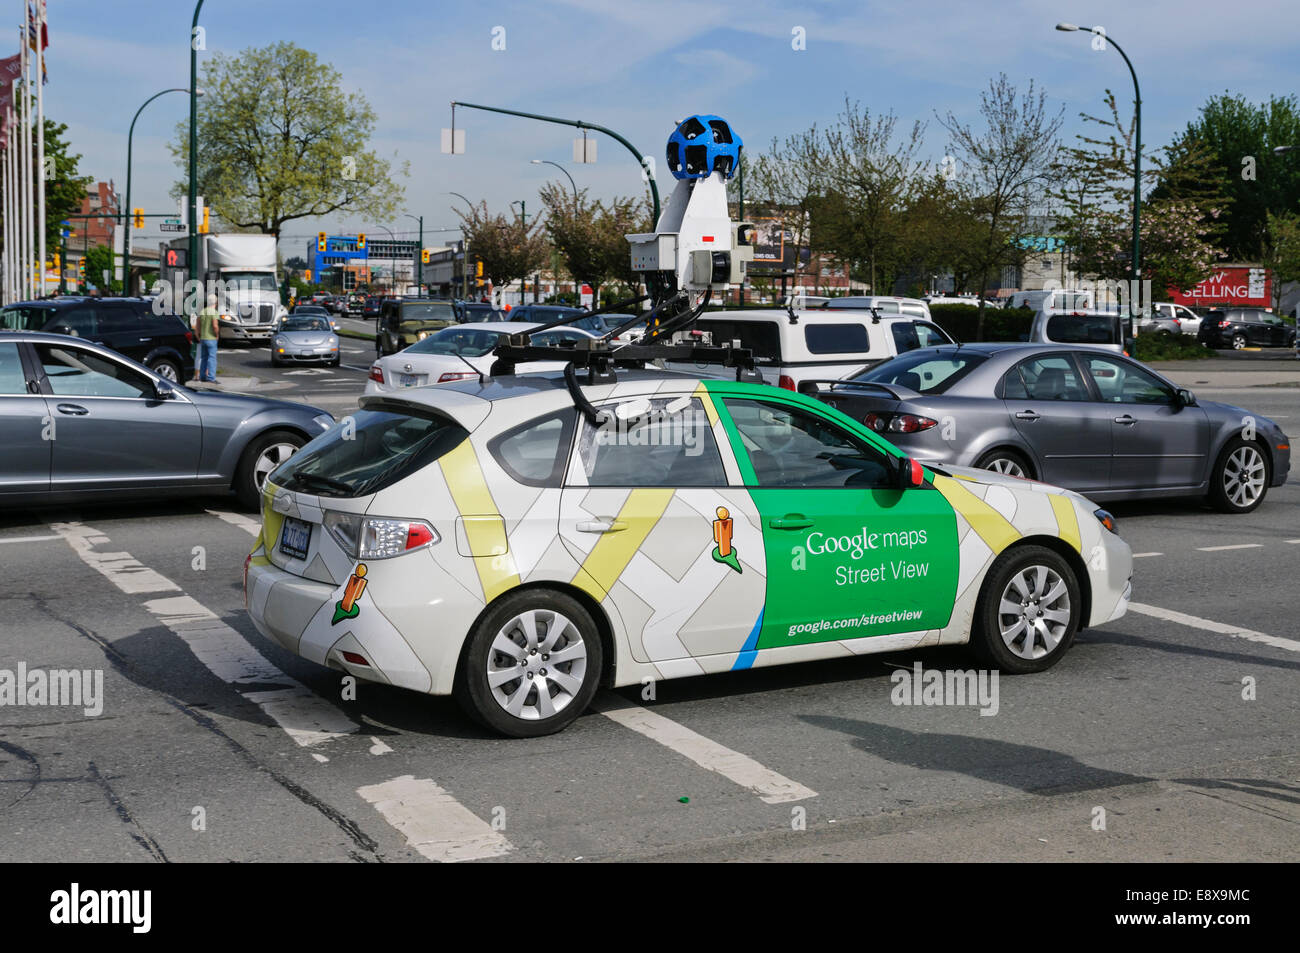 A Google Street View mapping vehicle in car traffic, Vancouver, B.C., Canada - Stock Image